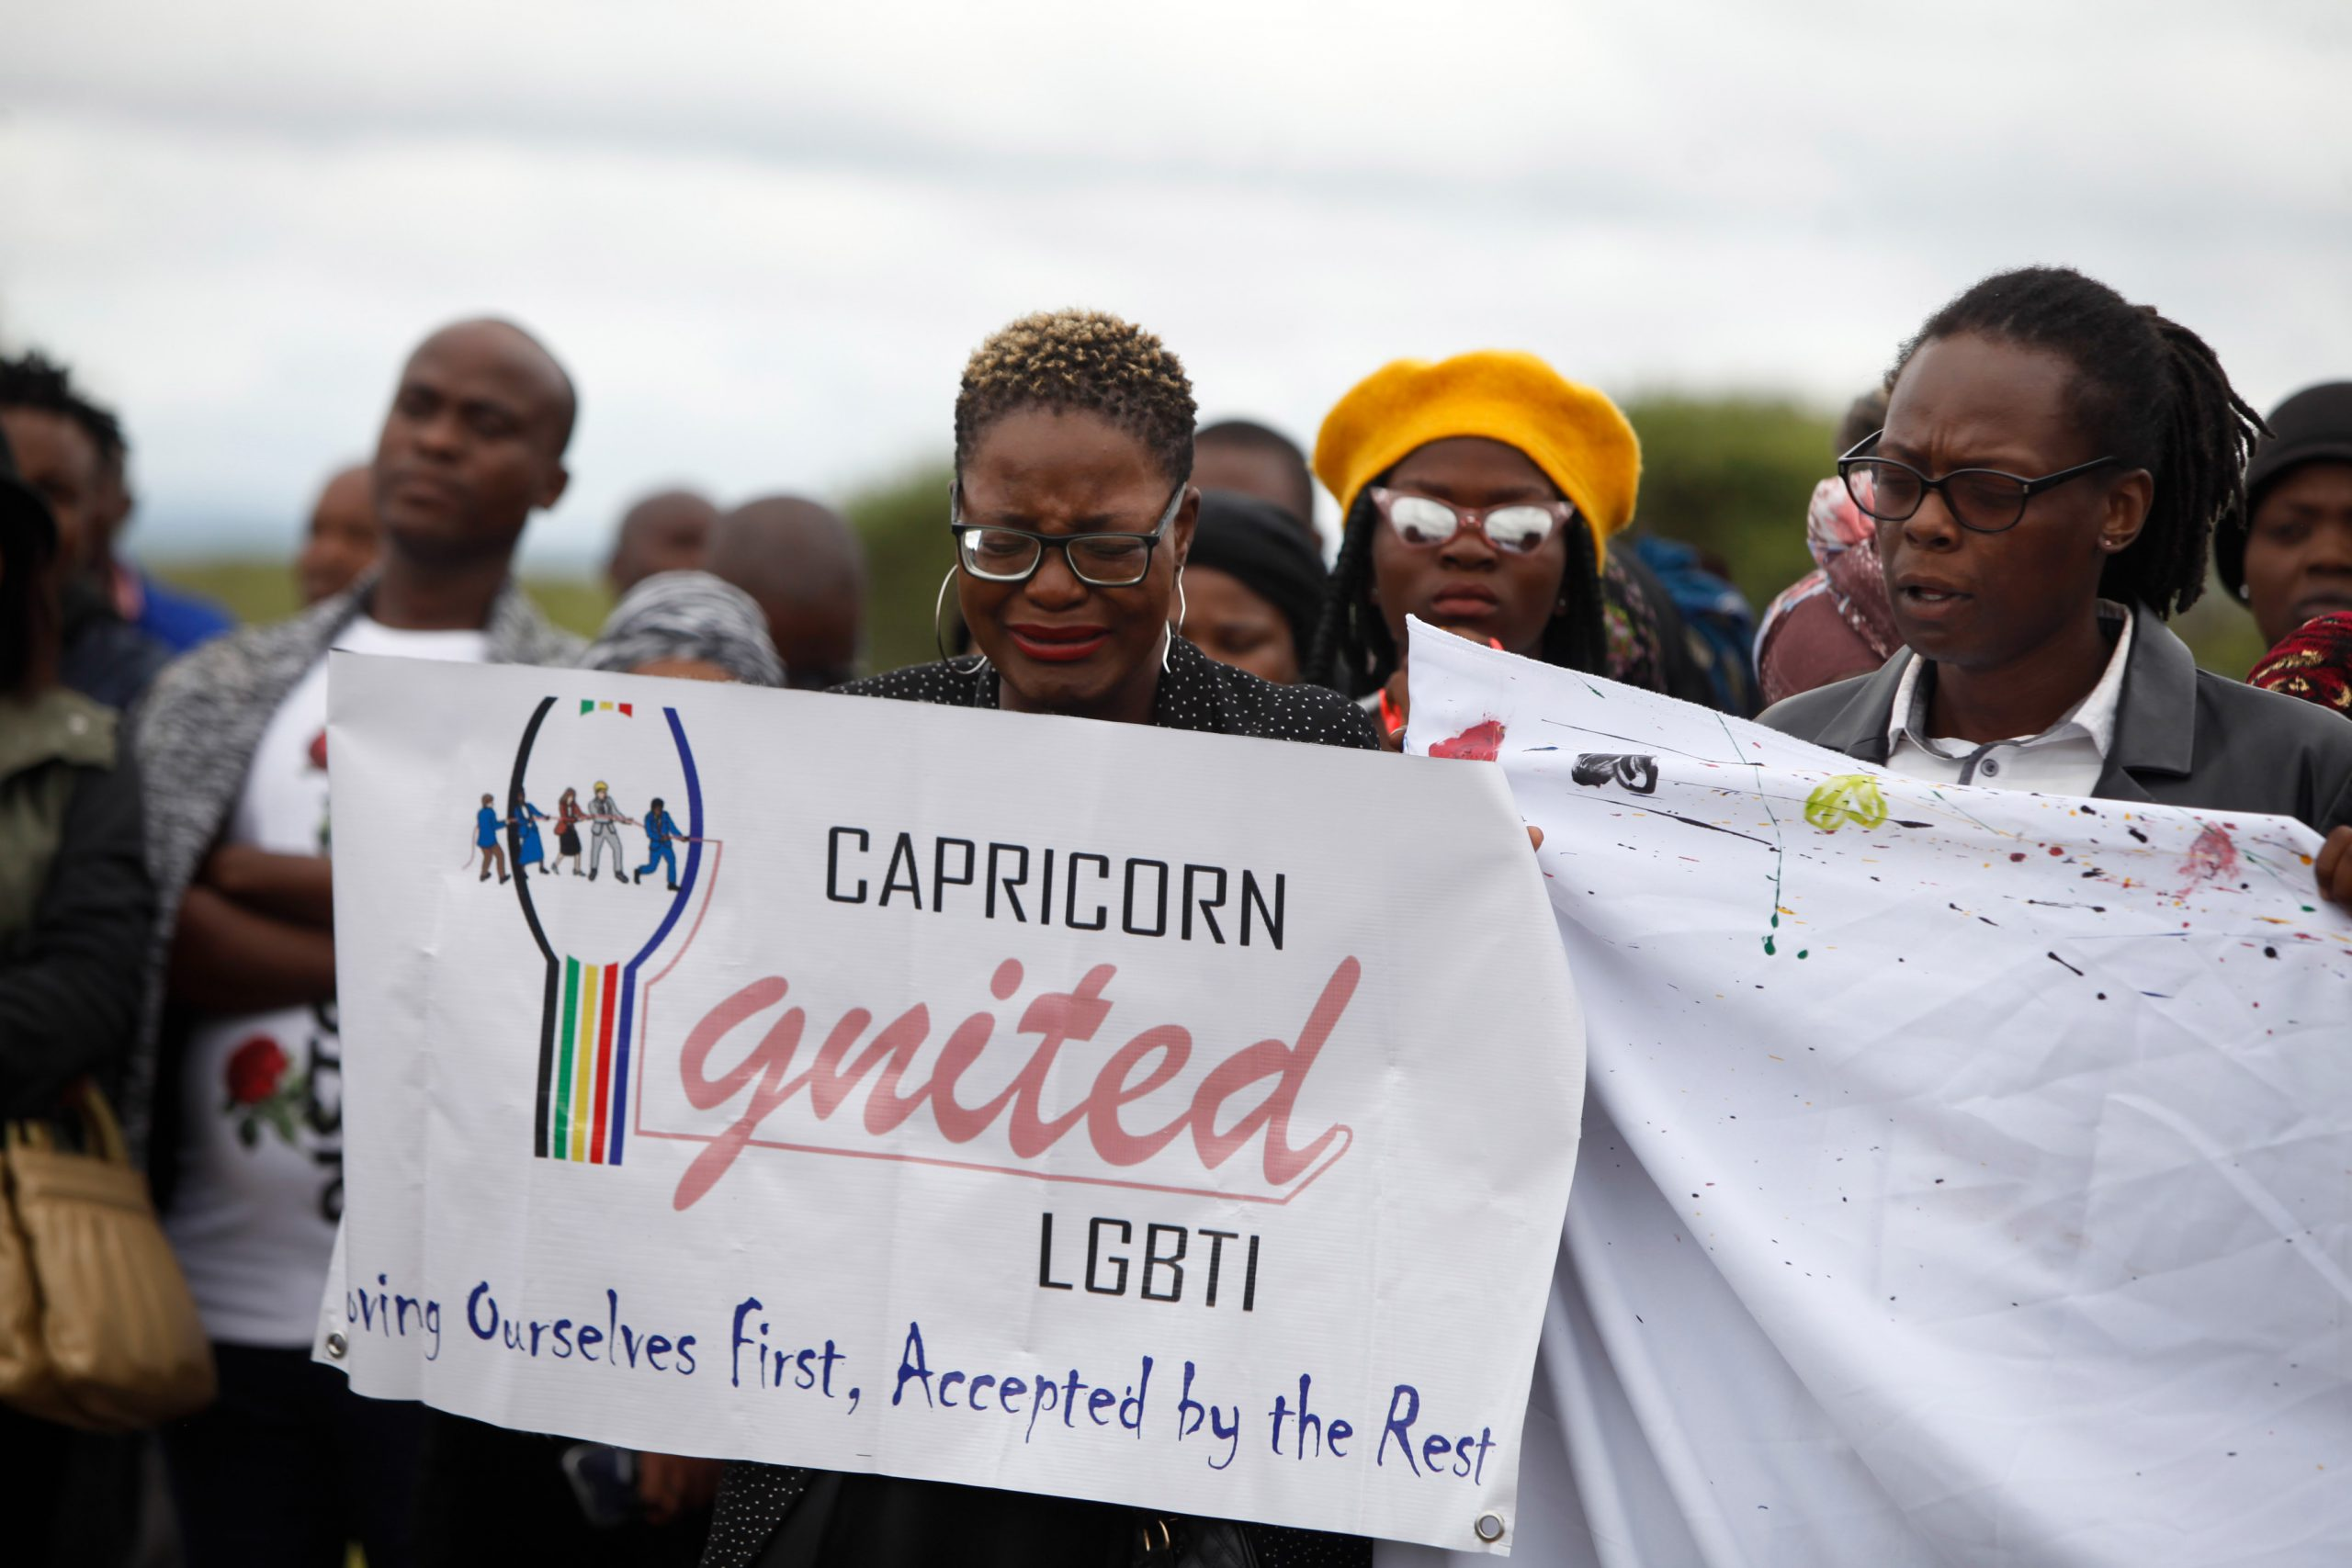 11 January 2020: LGBTQIA+ community members held up signs and banners condemning the brutal violence of Nare Mphela's murder.